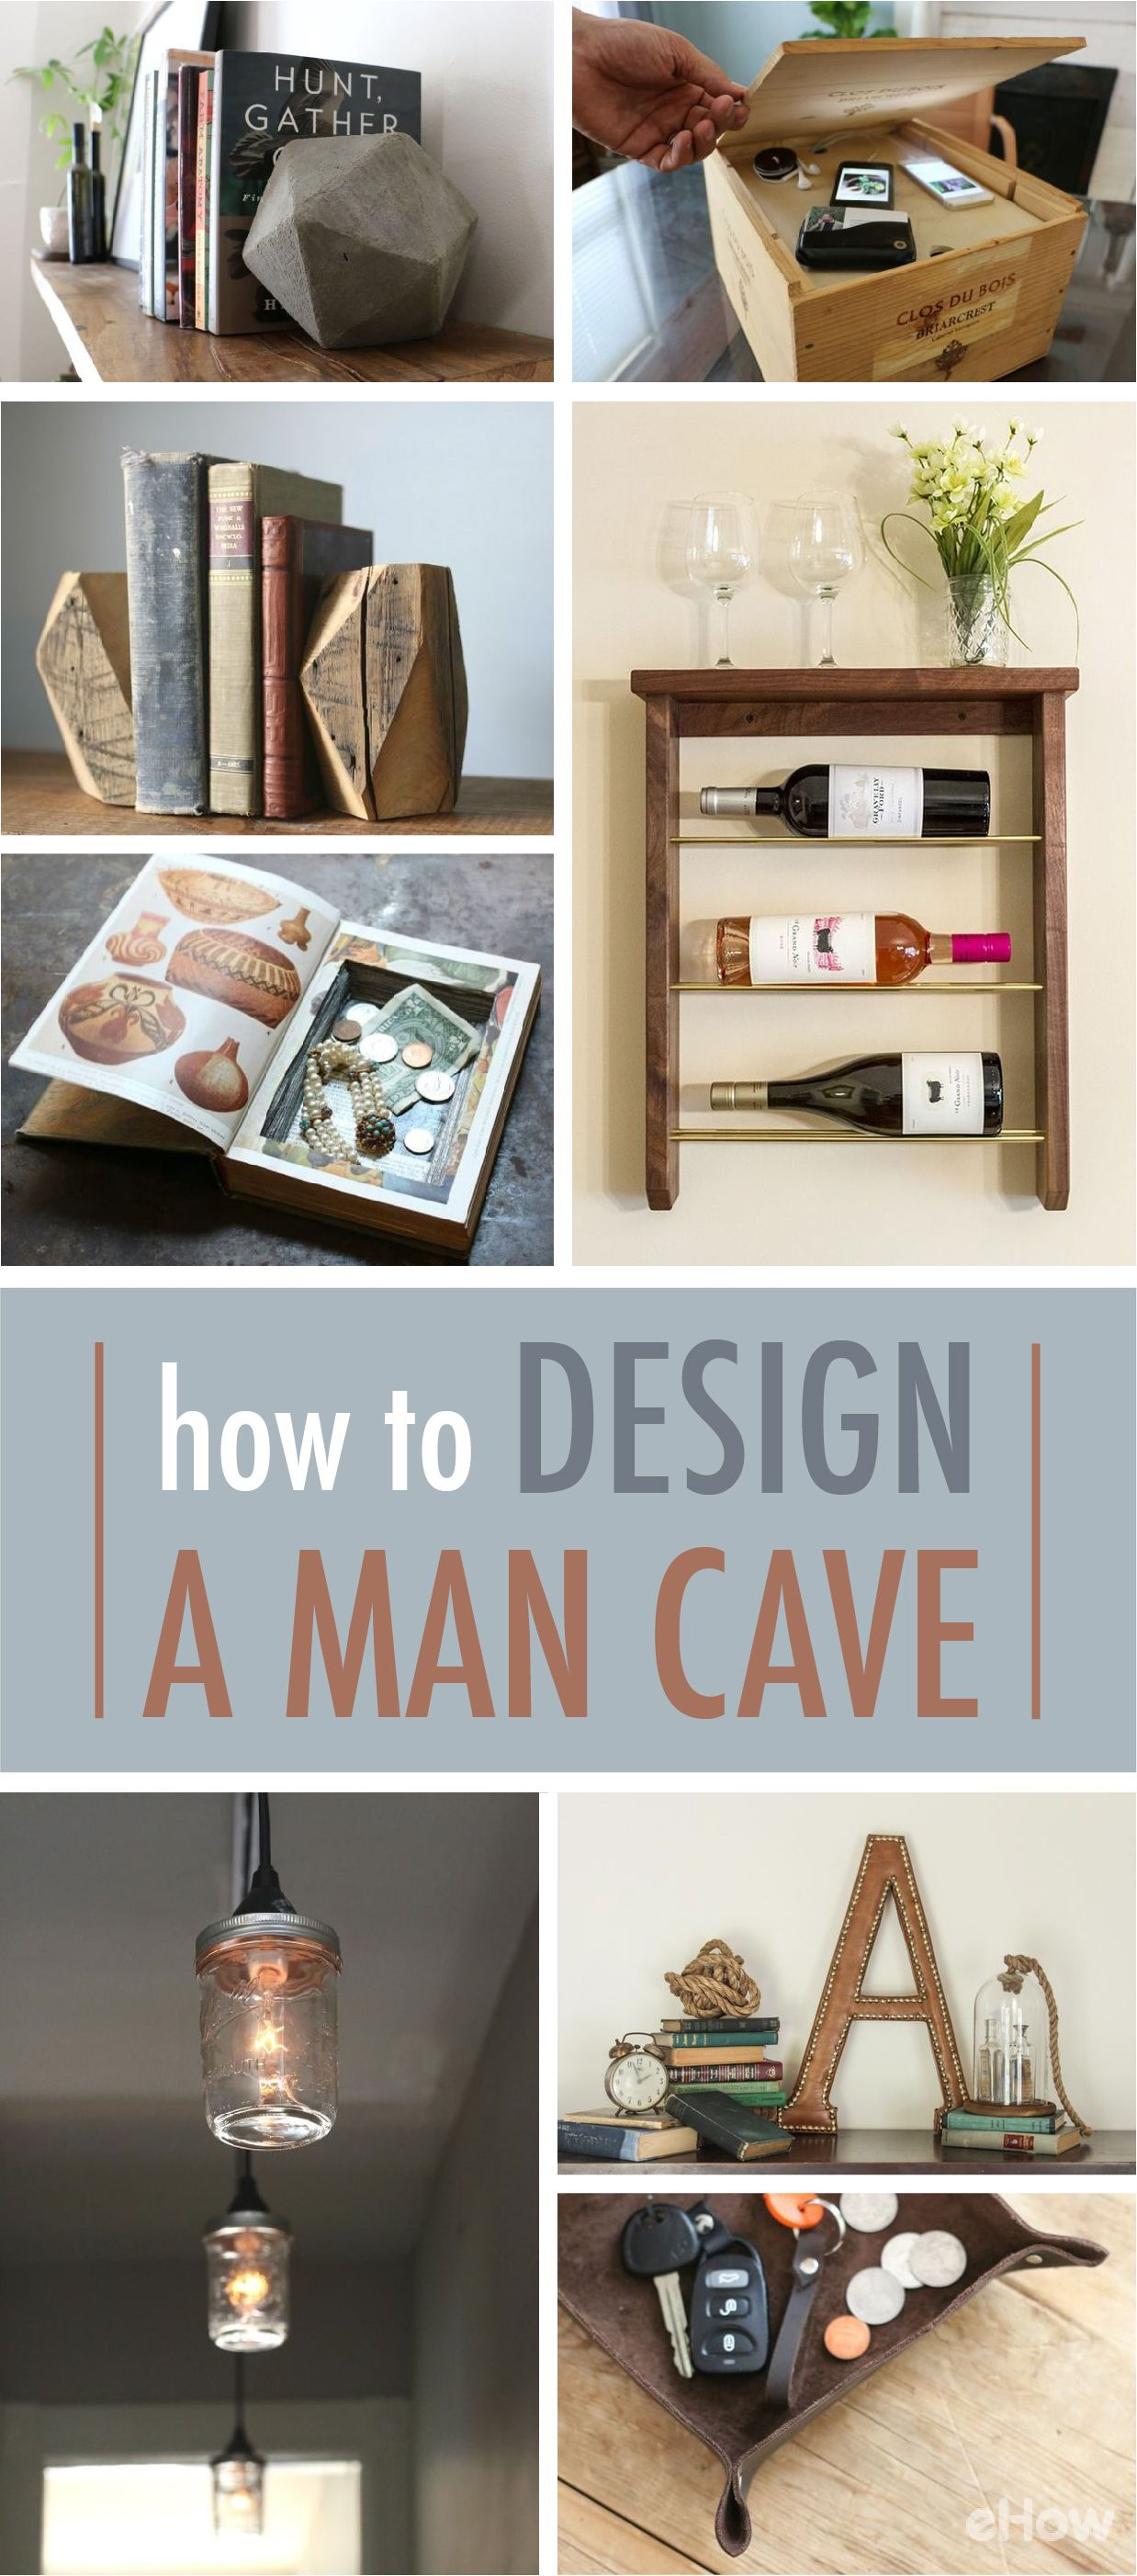 Man Cave Urban List : How to design a man cave jars wine bottle holders and caves